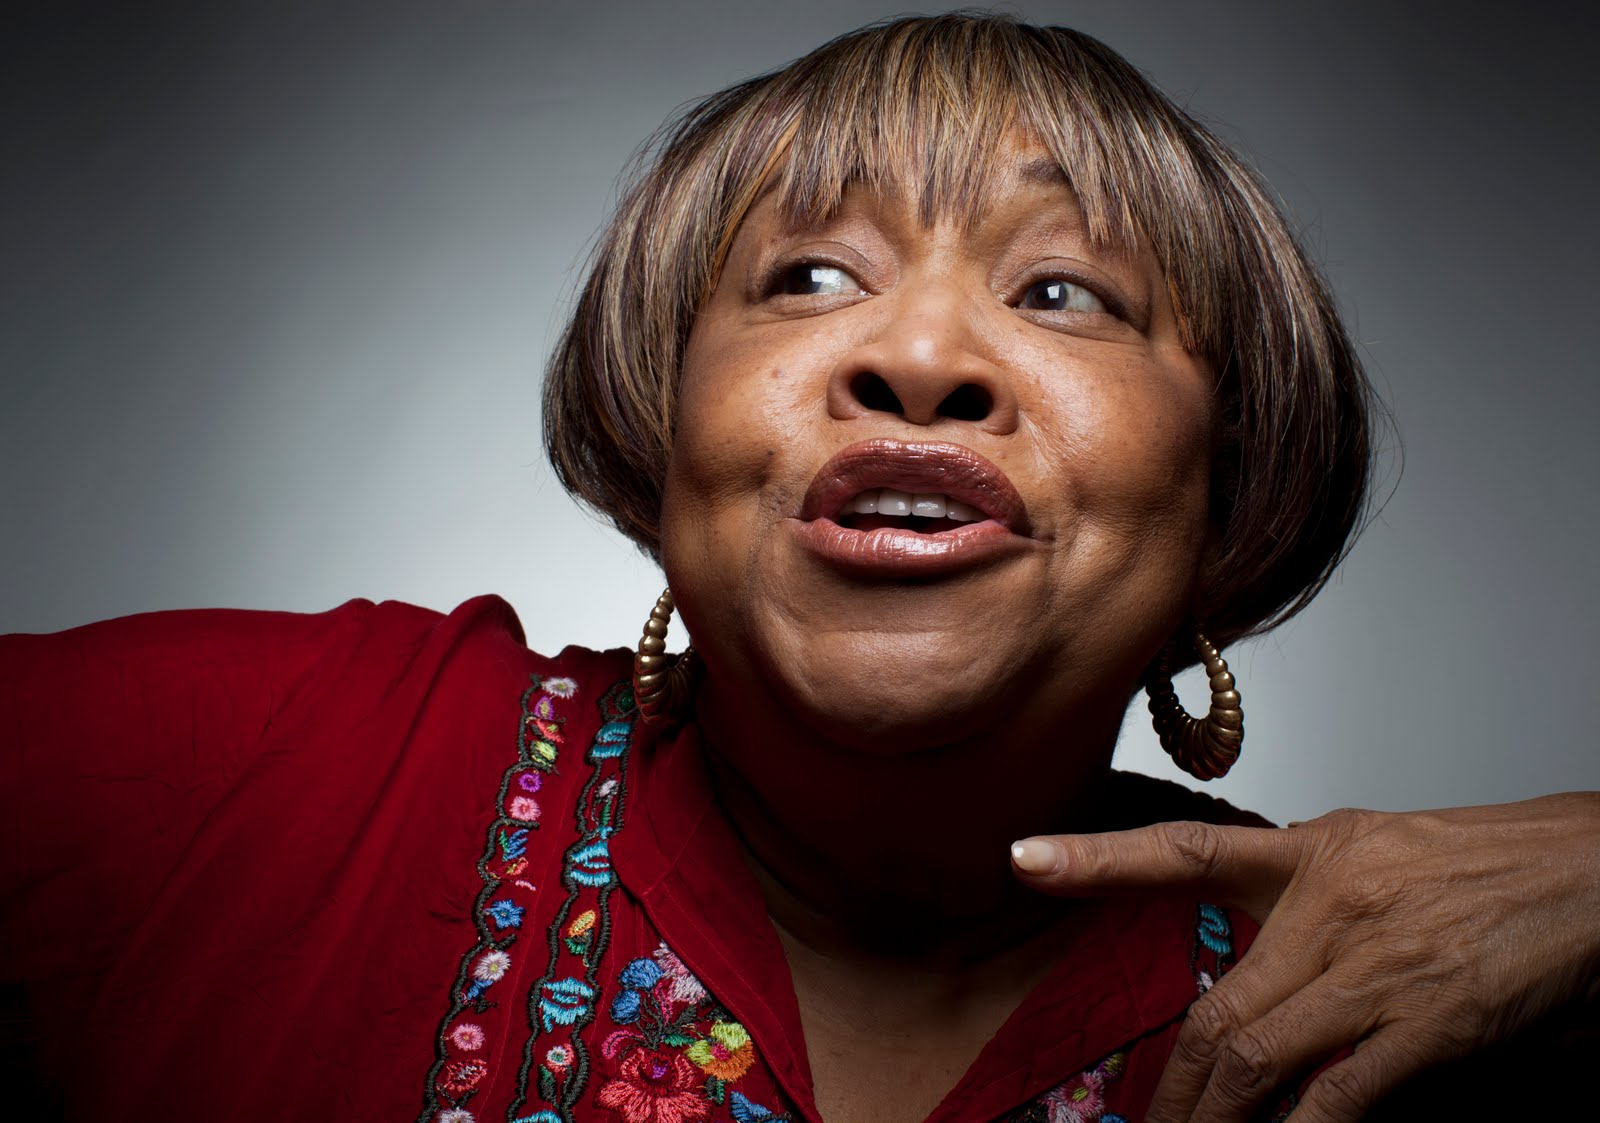 "MAVIS STAPLES FRIDAY, APRIL 7   A Grammy Winner and recent Kennedy Center honoree, Mavis Staples has more than cemented a legacy as one of the most distinctive voices in the past 60 years of American music. Mavis is the voice behind such Staple Singer hits as ""I'll Take Your There"" and ""Respect Yourself"" and has recently collaborated with artists like Arcade Fire, Wilco and more!"